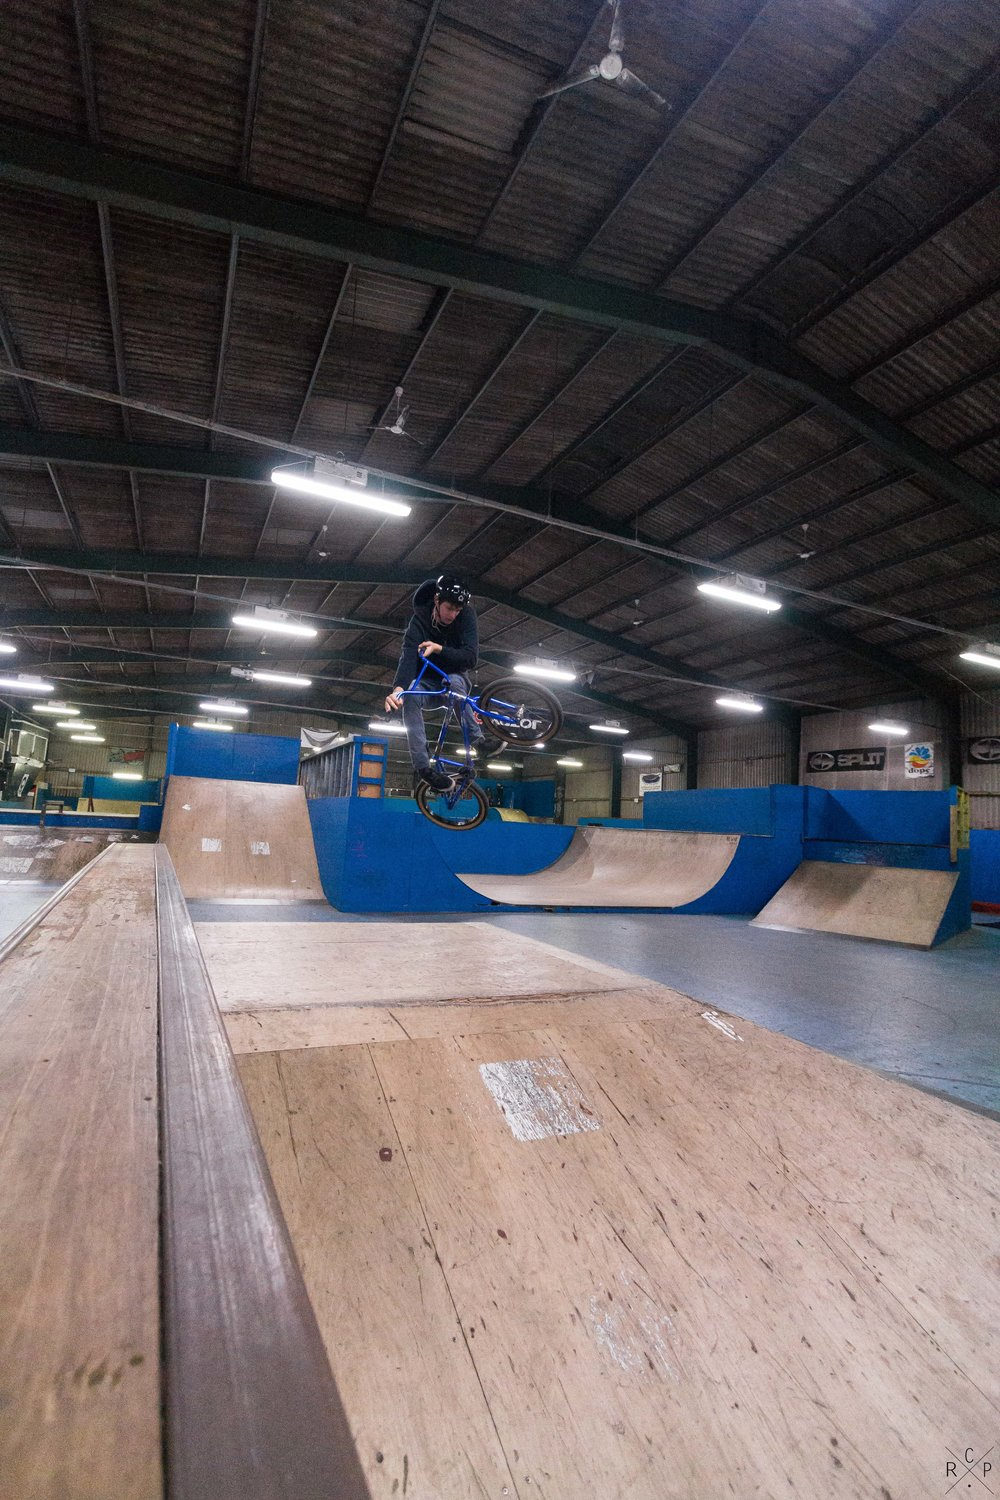 Dom Tabe Air - Ramp City, Blackpool, England 24/11/2016